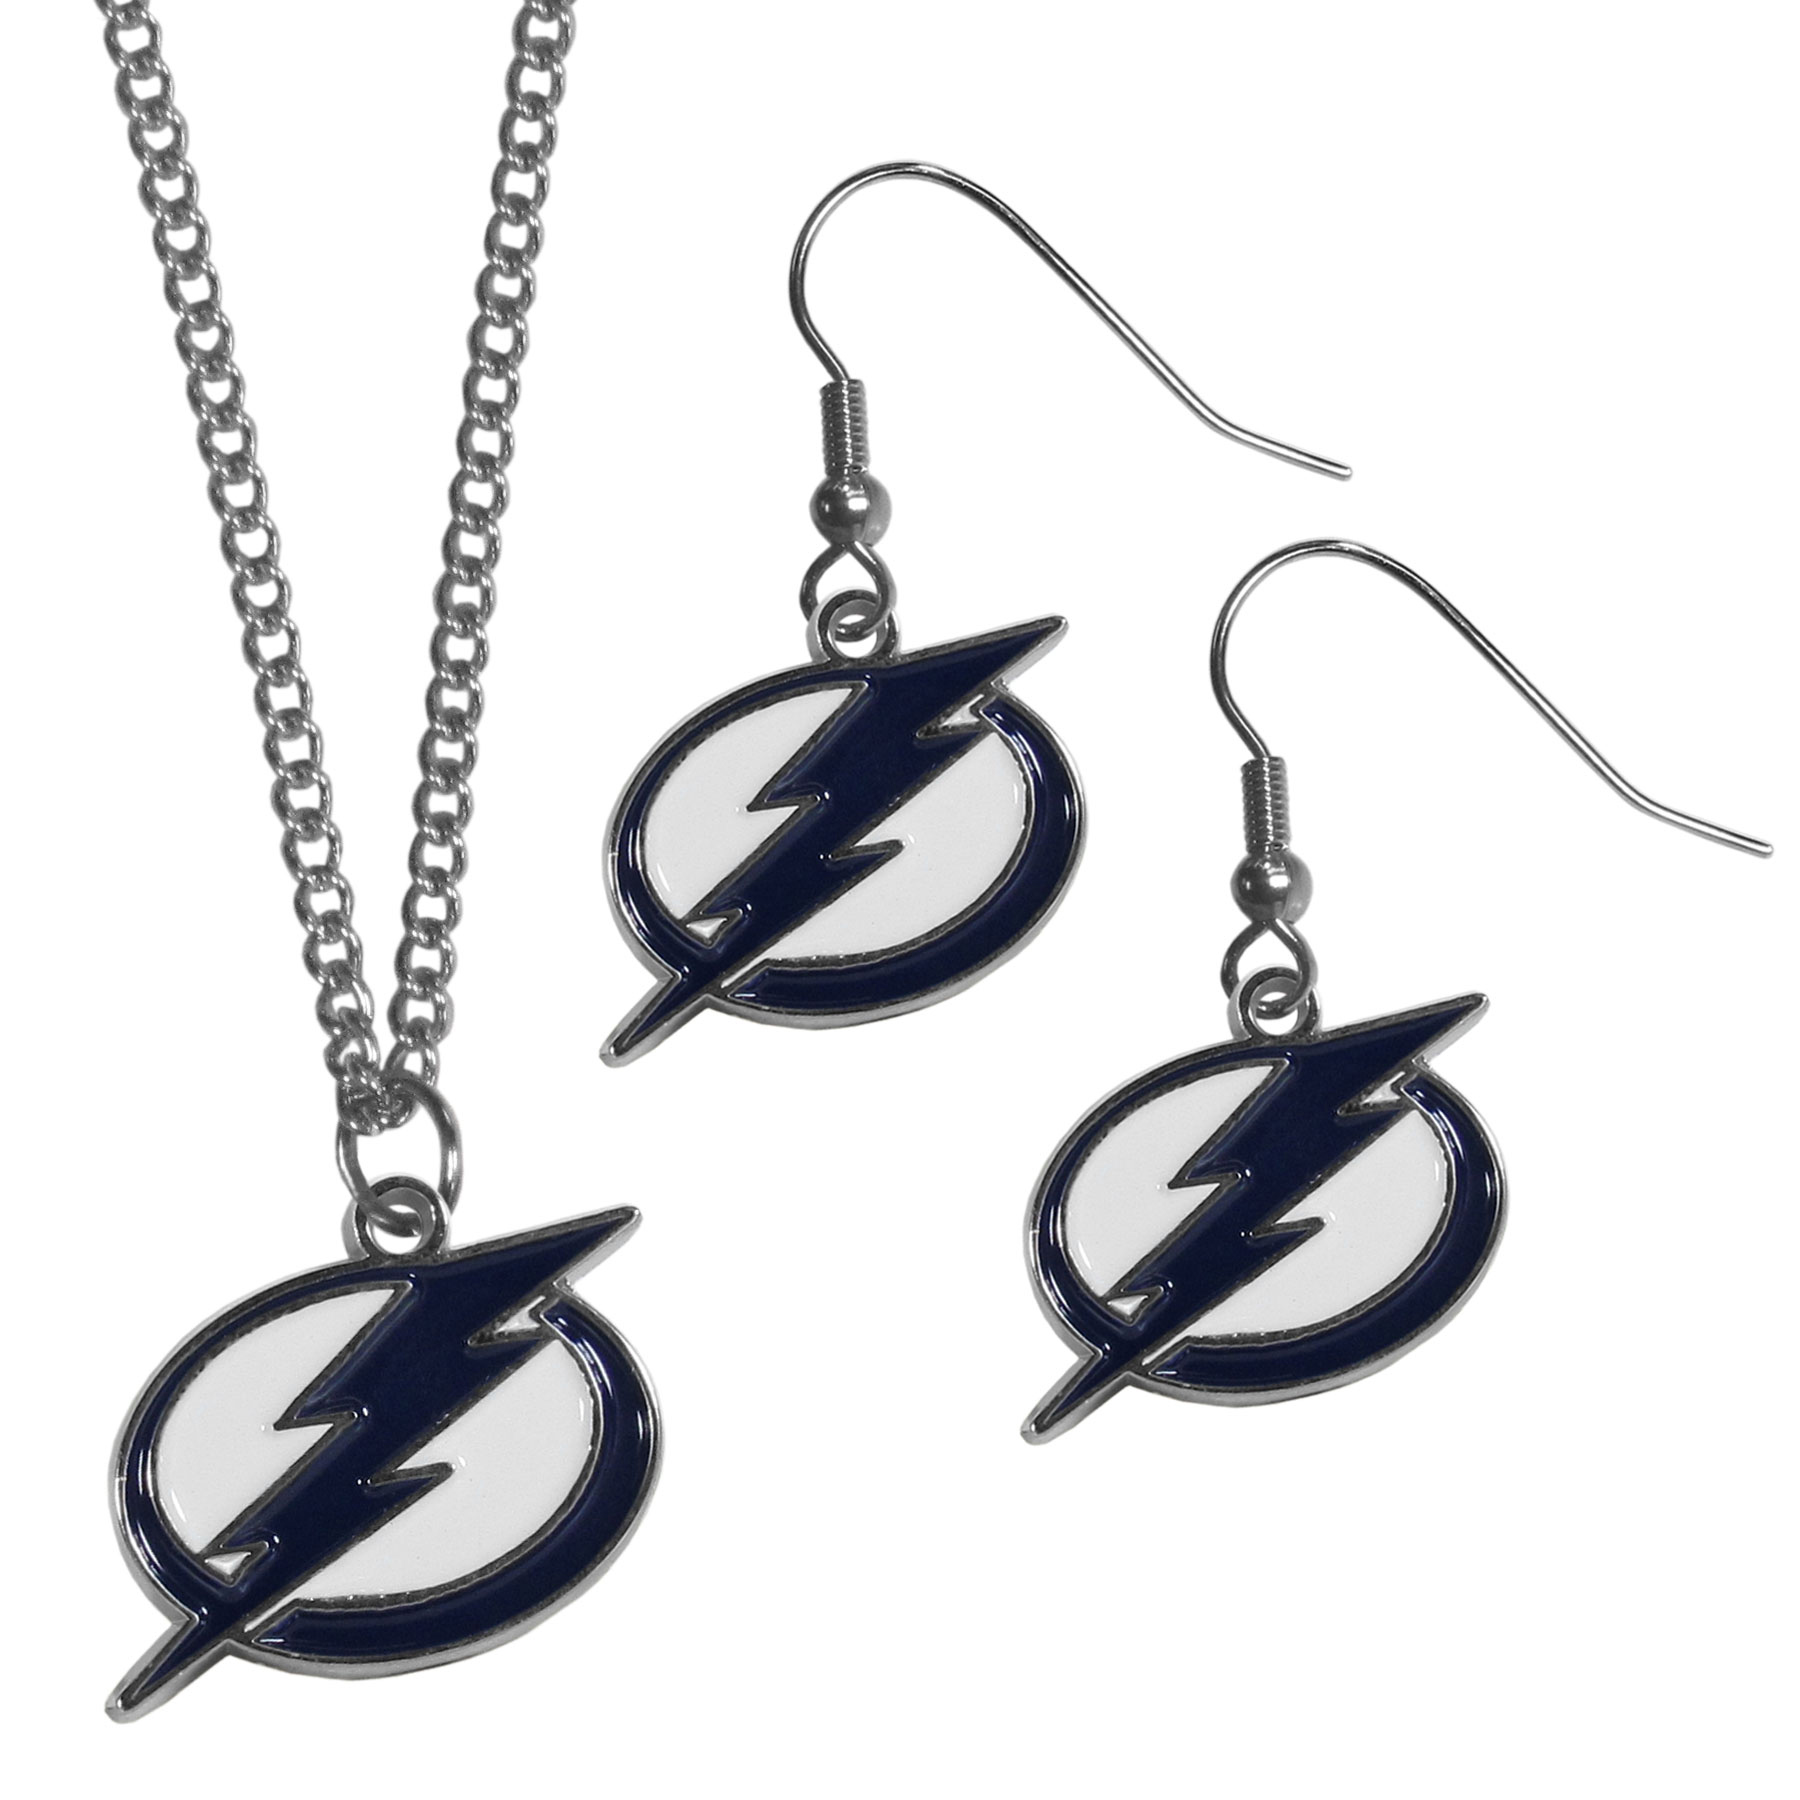 Tampa Bay Lightning® Dangle Earrings and Chain Necklace Set - This classic jewelry set contains are most popular Tampa Bay Lightning® dangle earrings and 22 inch chain necklace. The trendy, dangle earrings are lightweight and feature a fully cast metal team charm with enameled team colors. The matching necklace completes this fashion forward combo and is a spirited set that is perfect for game day but nice enough for everyday.